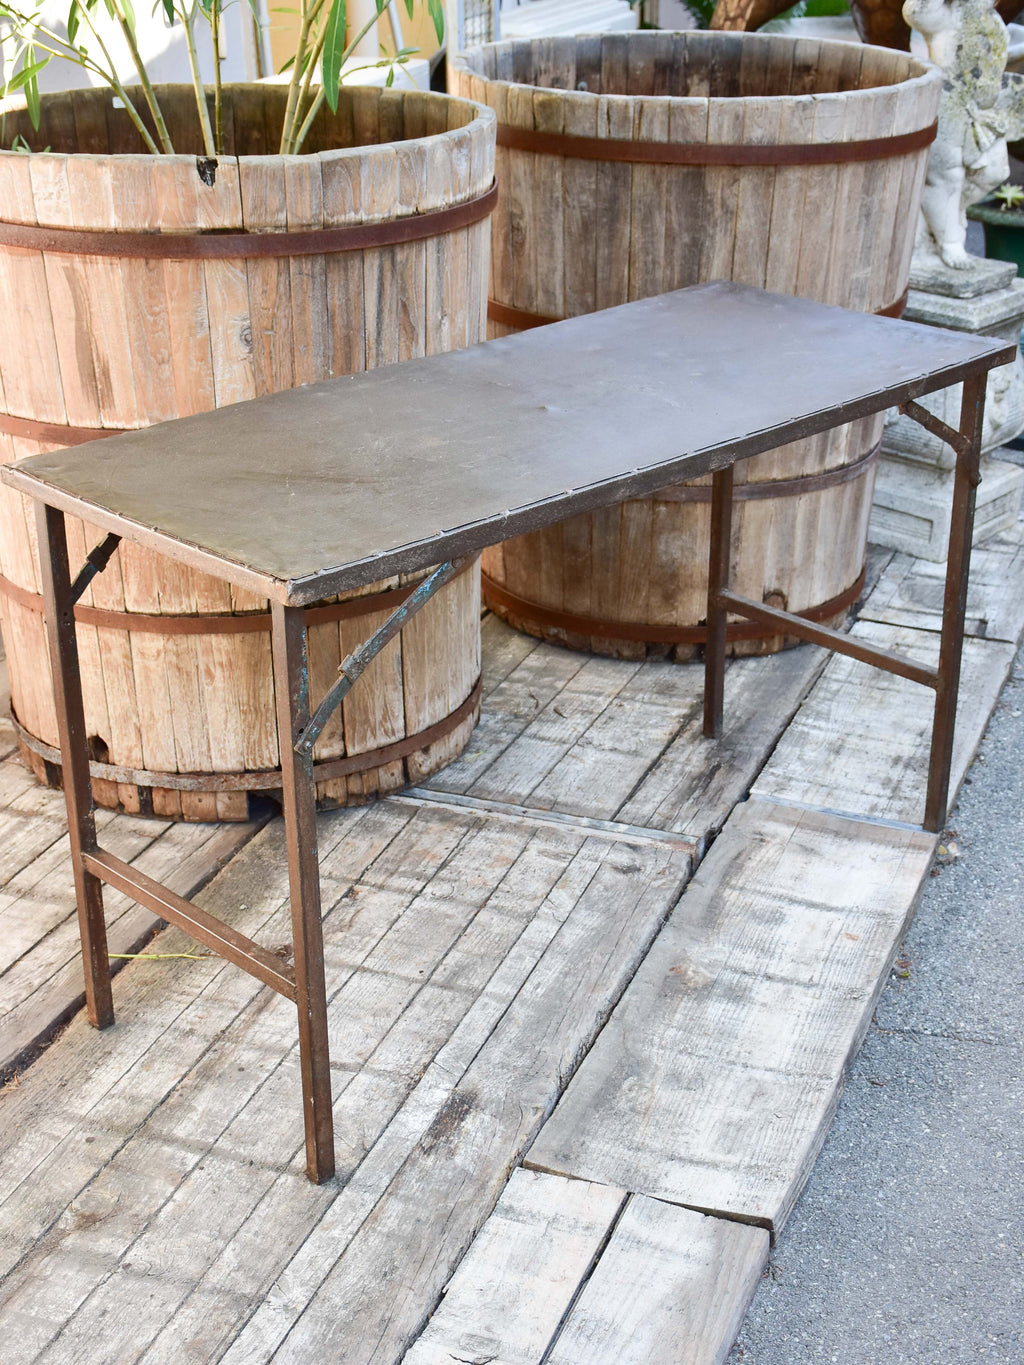 Industrial folding table from a workshop